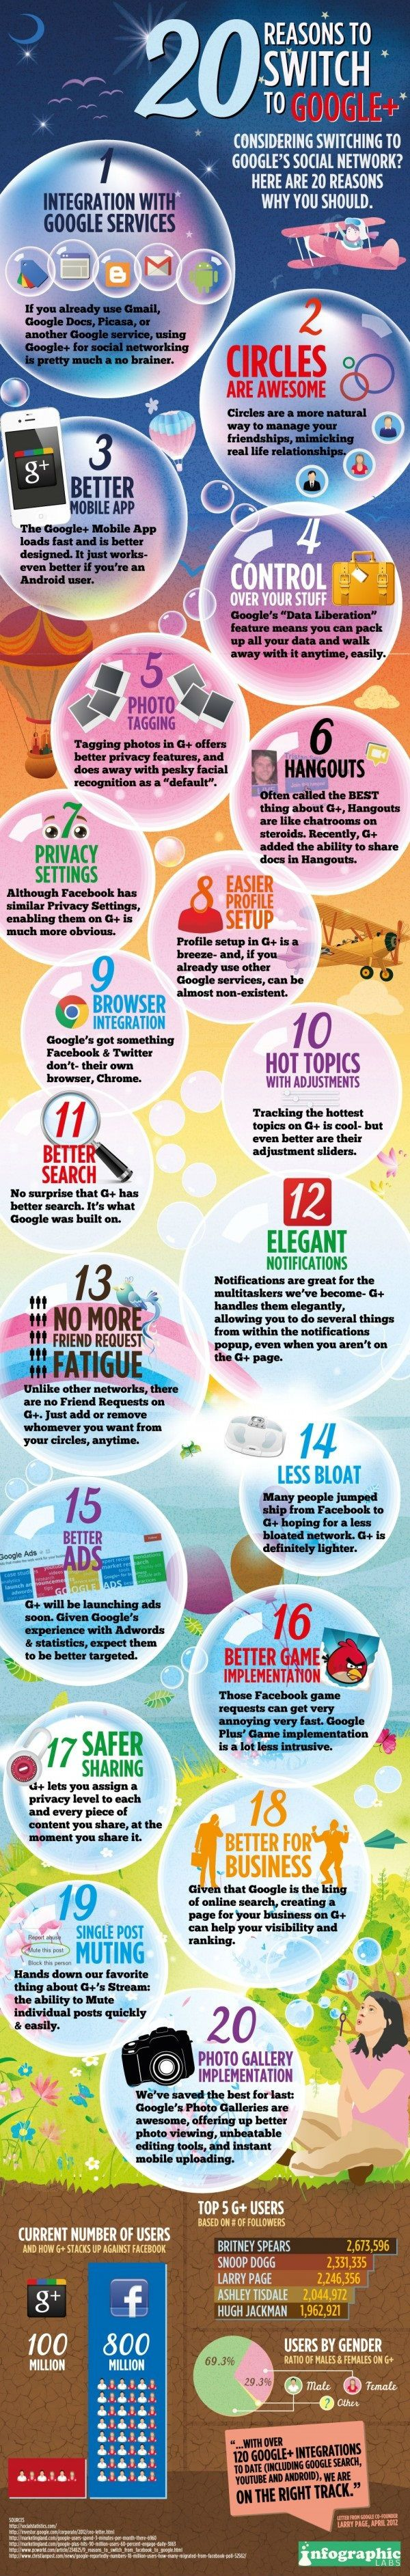 20 Reasons to Switch to Google+